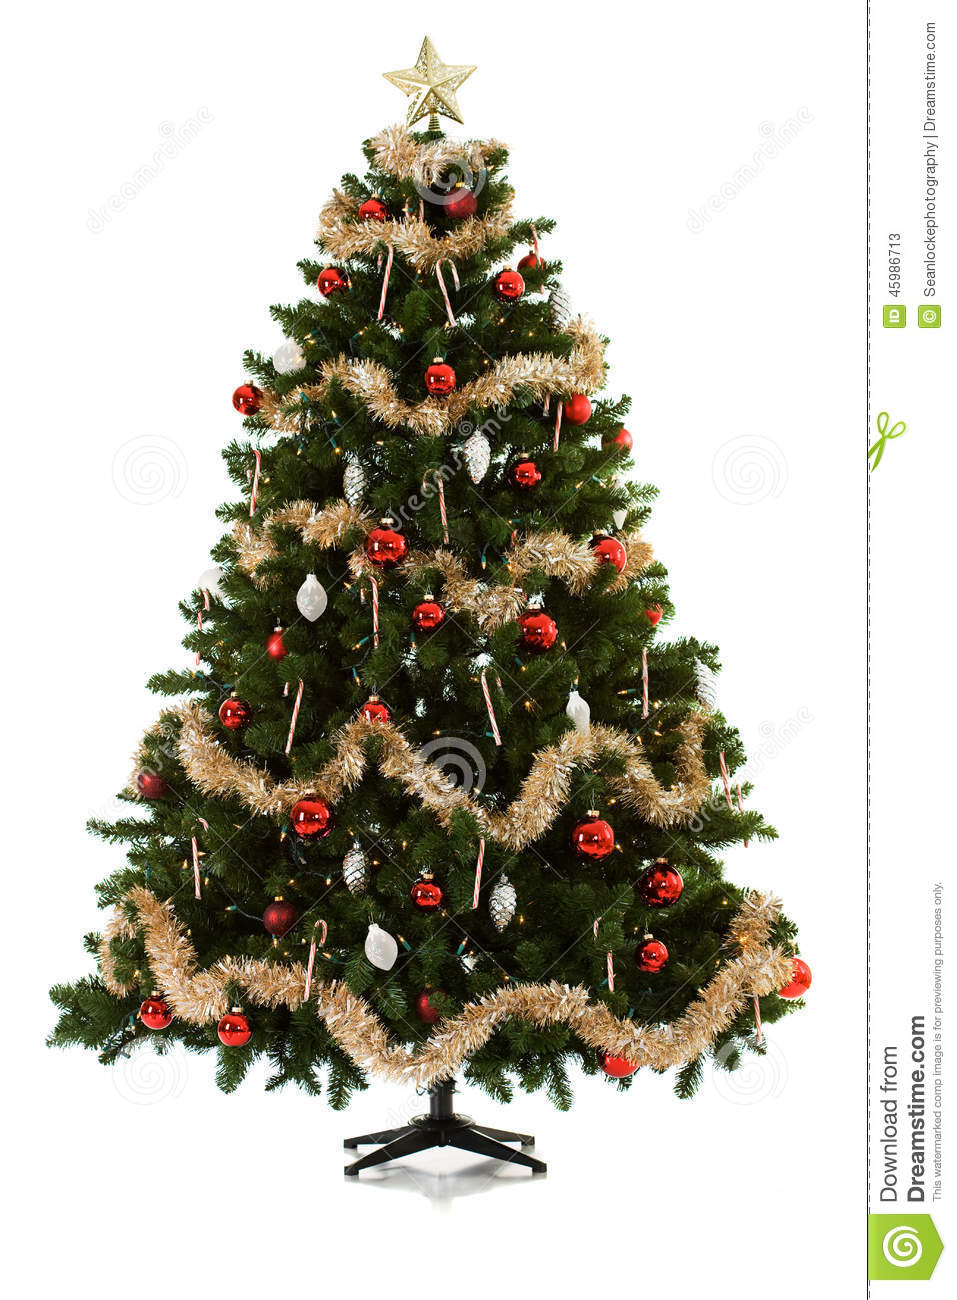 download christmas tree being set up in 16 image series stock image image of holiday - How To Put Up A Christmas Tree